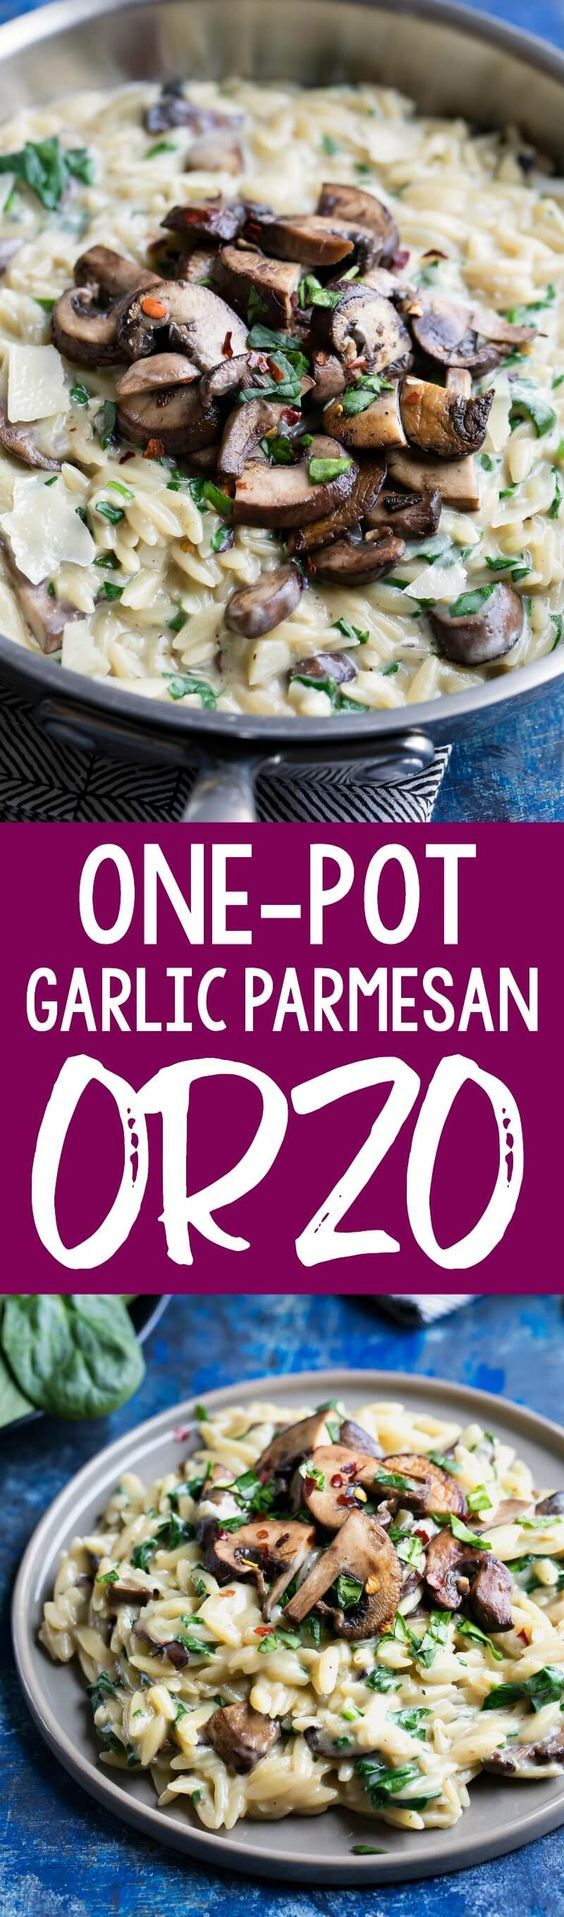 This One-Pot Garlic Parmesan Orzo with Spinach and Mushrooms is blanketed in a totally luscious sauce and swirled with veggies. This tasty vegetarian side dish also double as a main course! #onepot #onepan #pasta